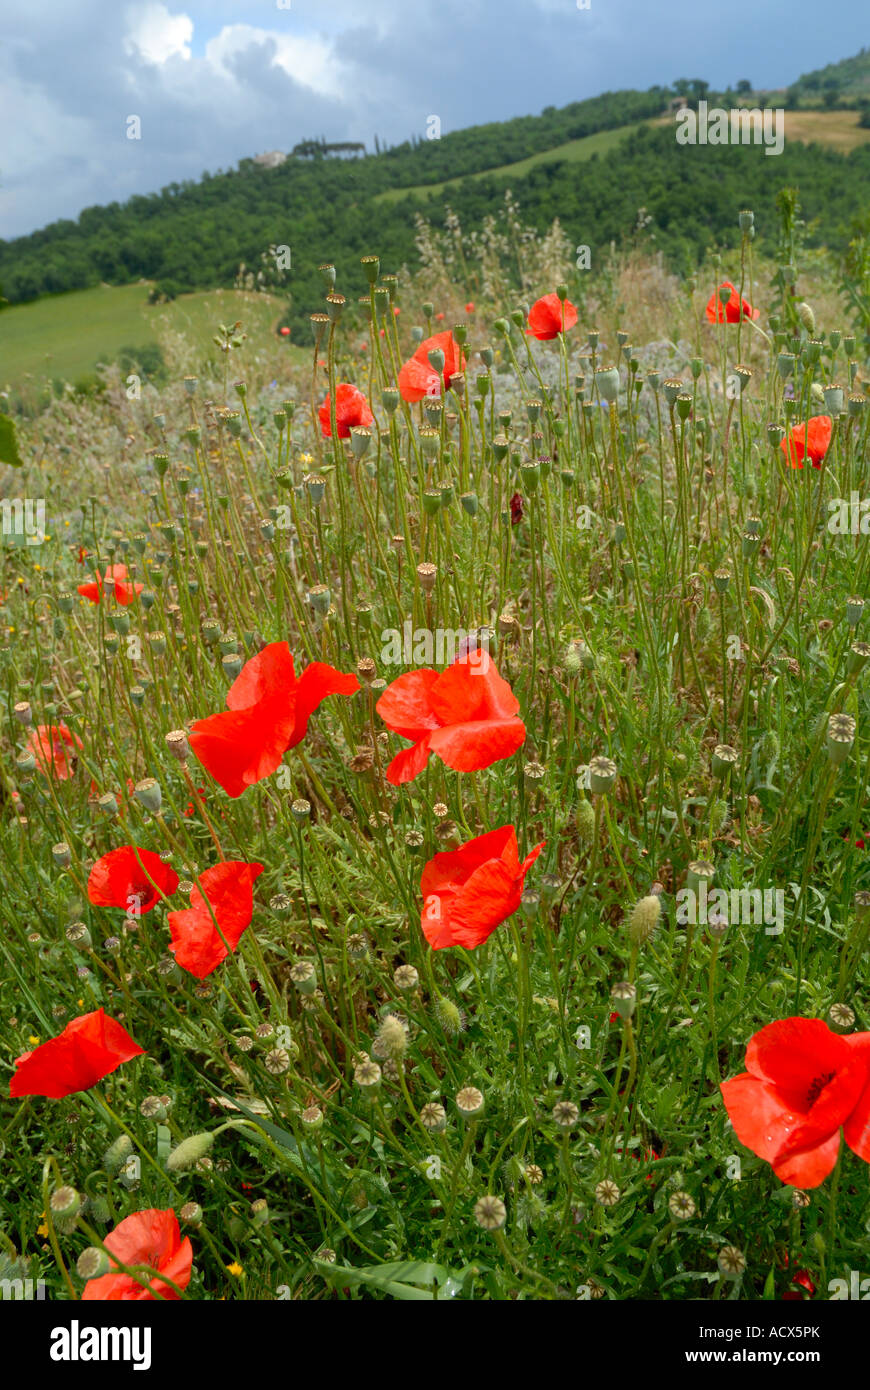 Poppys and wild flowers in Tuscany, Italy - Stock Image